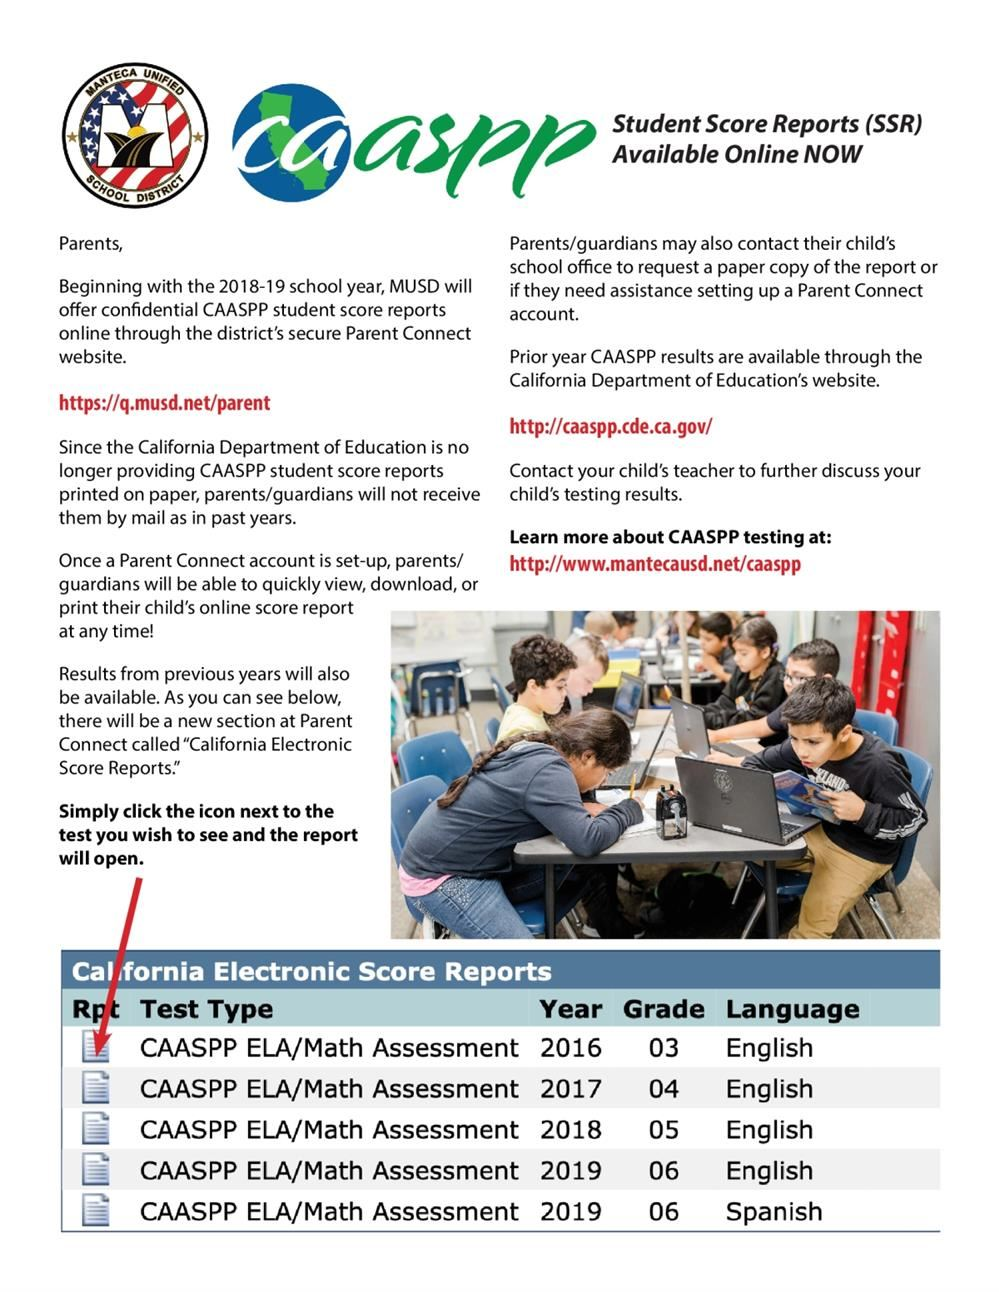 How to obtain CAASPP Student Scores